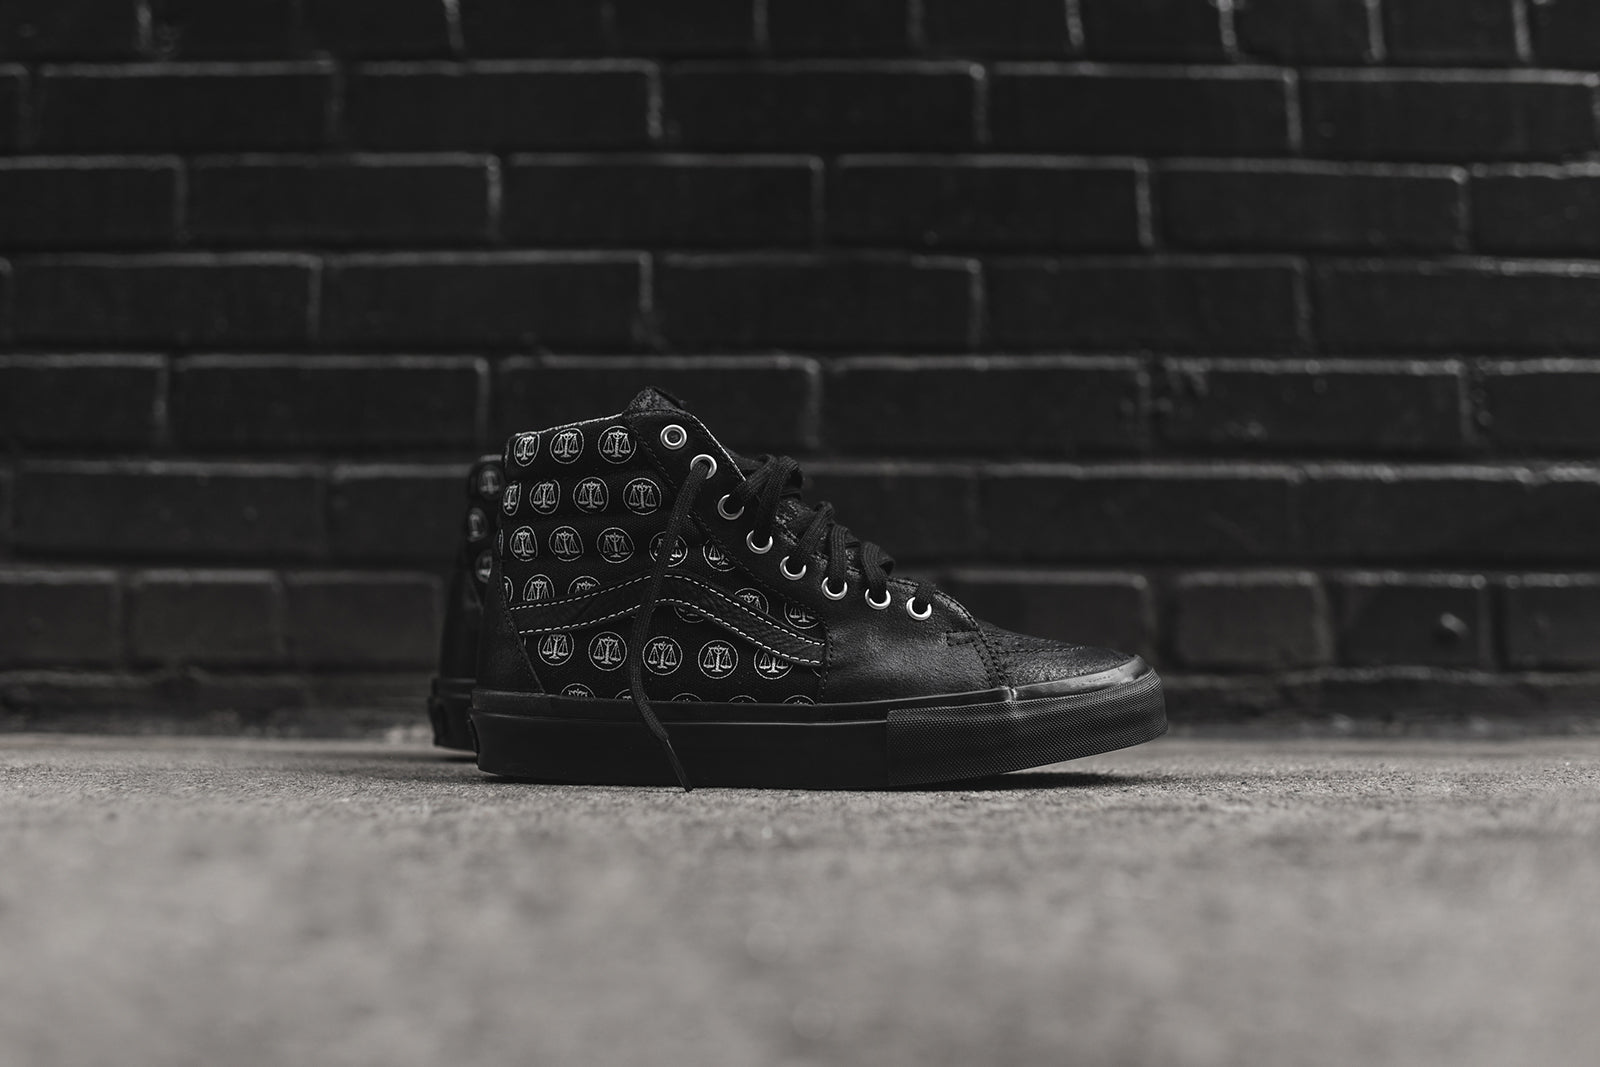 9e4ac8b47a5d Vans Vault x Highs And Lows Pack – Kith